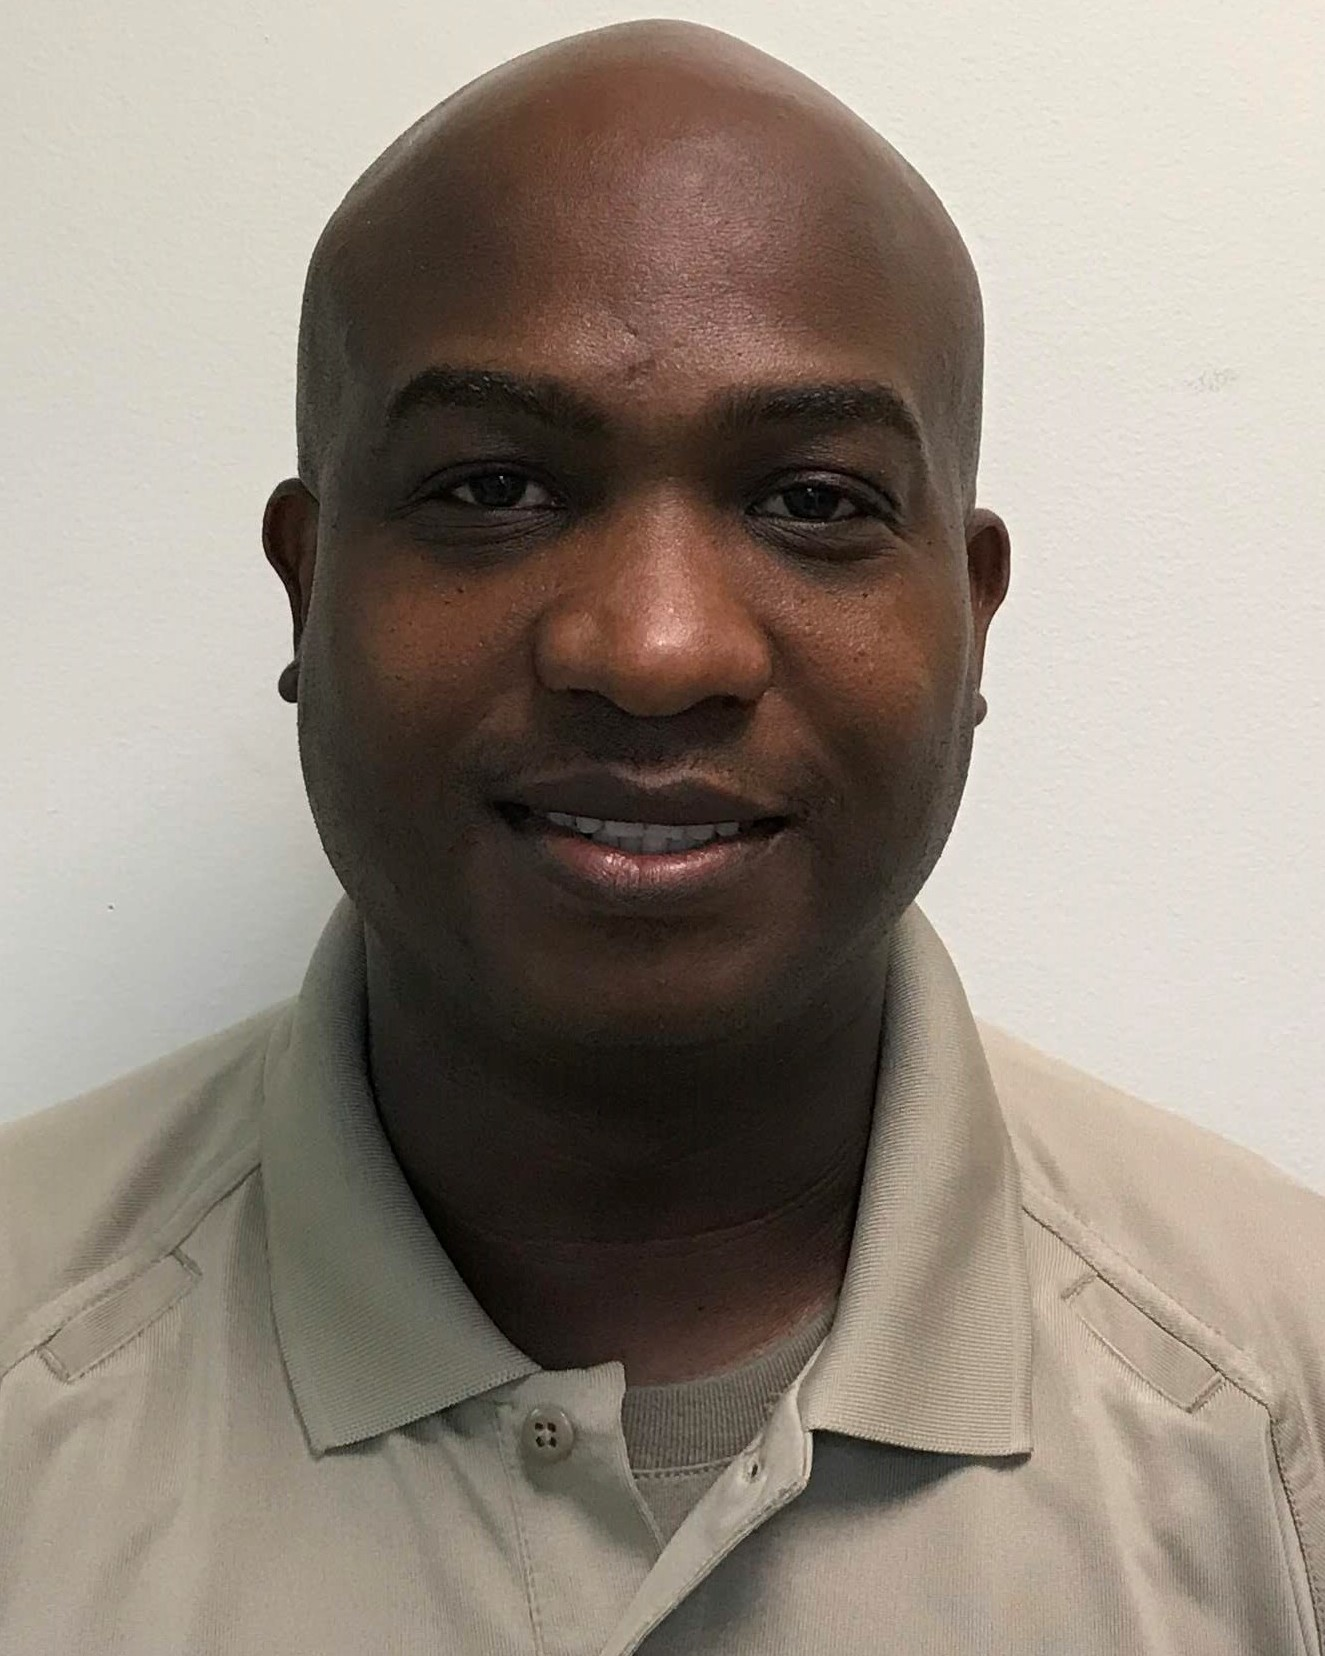 Deputy Sheriff Sheldon Gordon Whiteman | Long County Sheriff's Office, Georgia